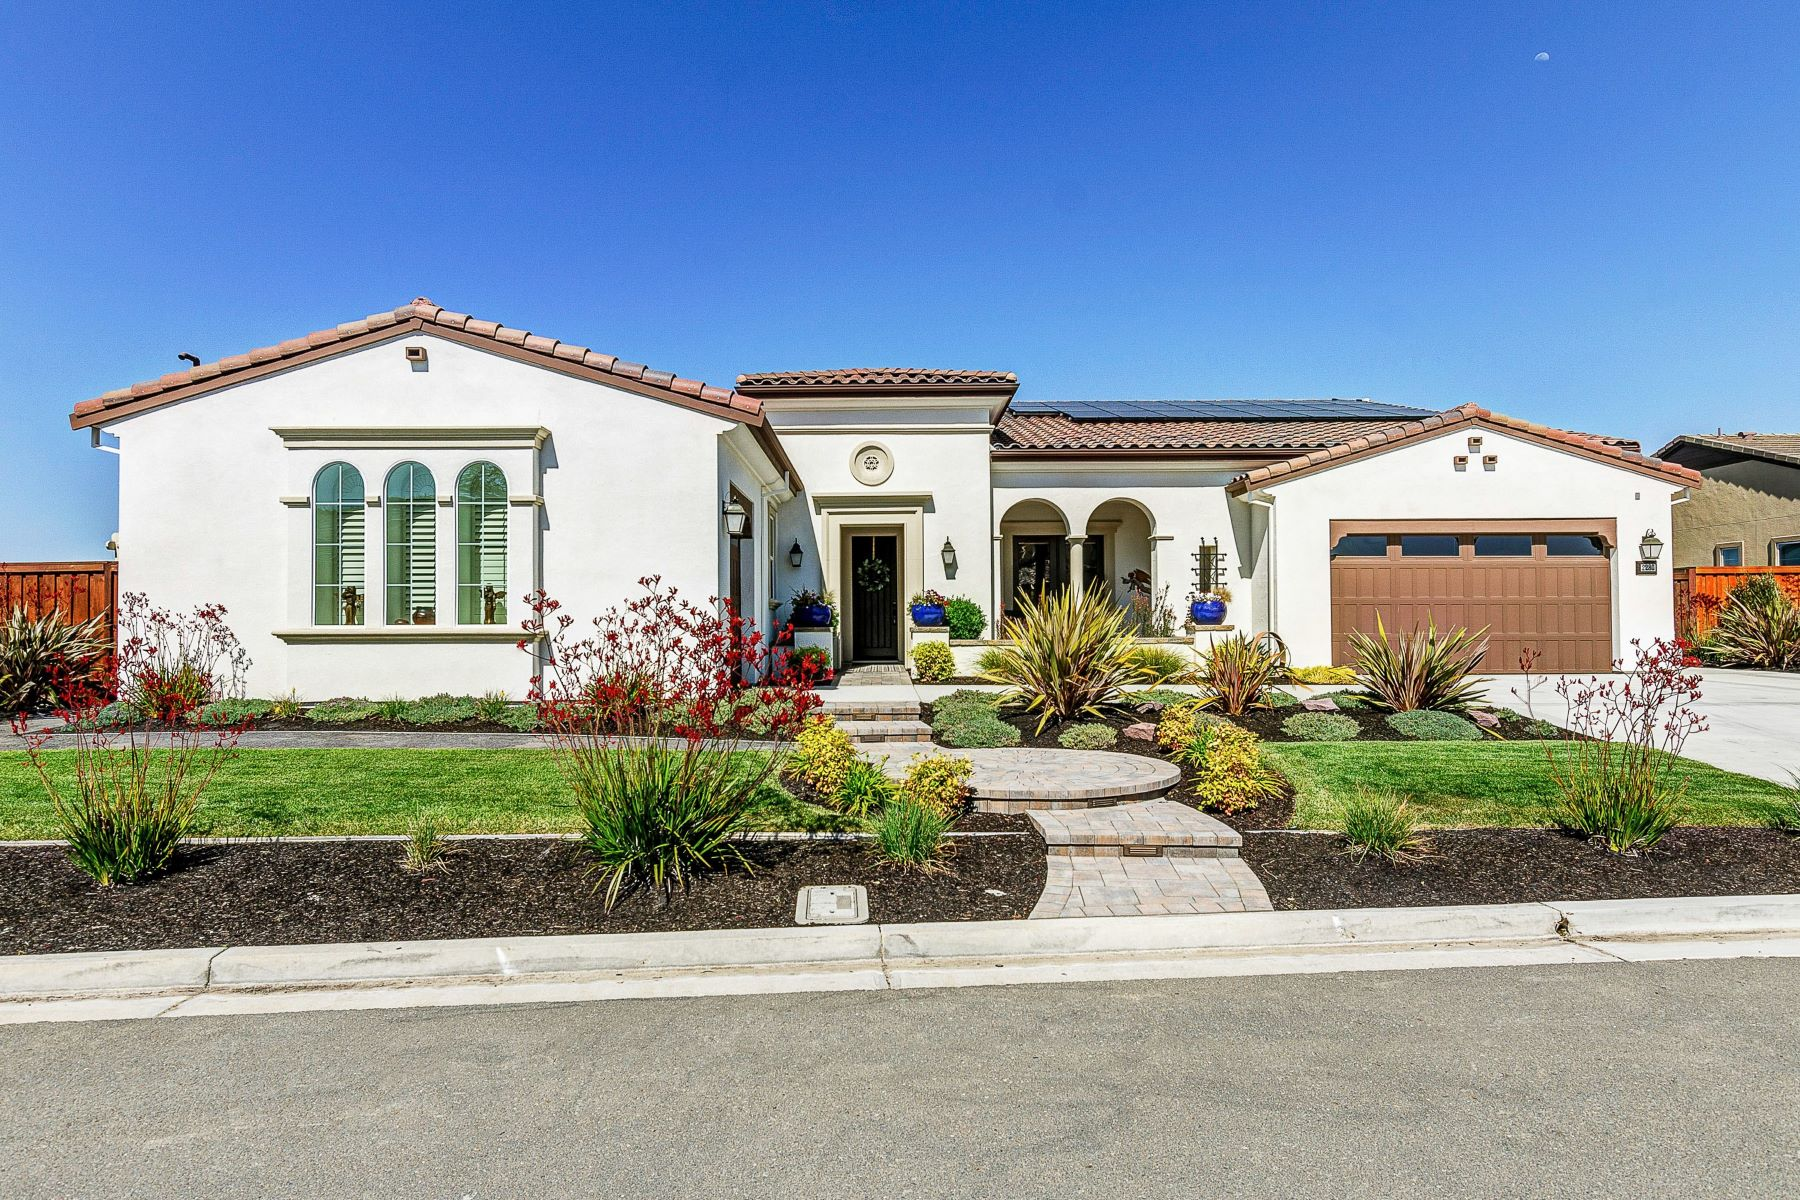 Single Family Homes for Active at Expansive Country Estate 2280 Reserve Drive Brentwood, California 94513 United States